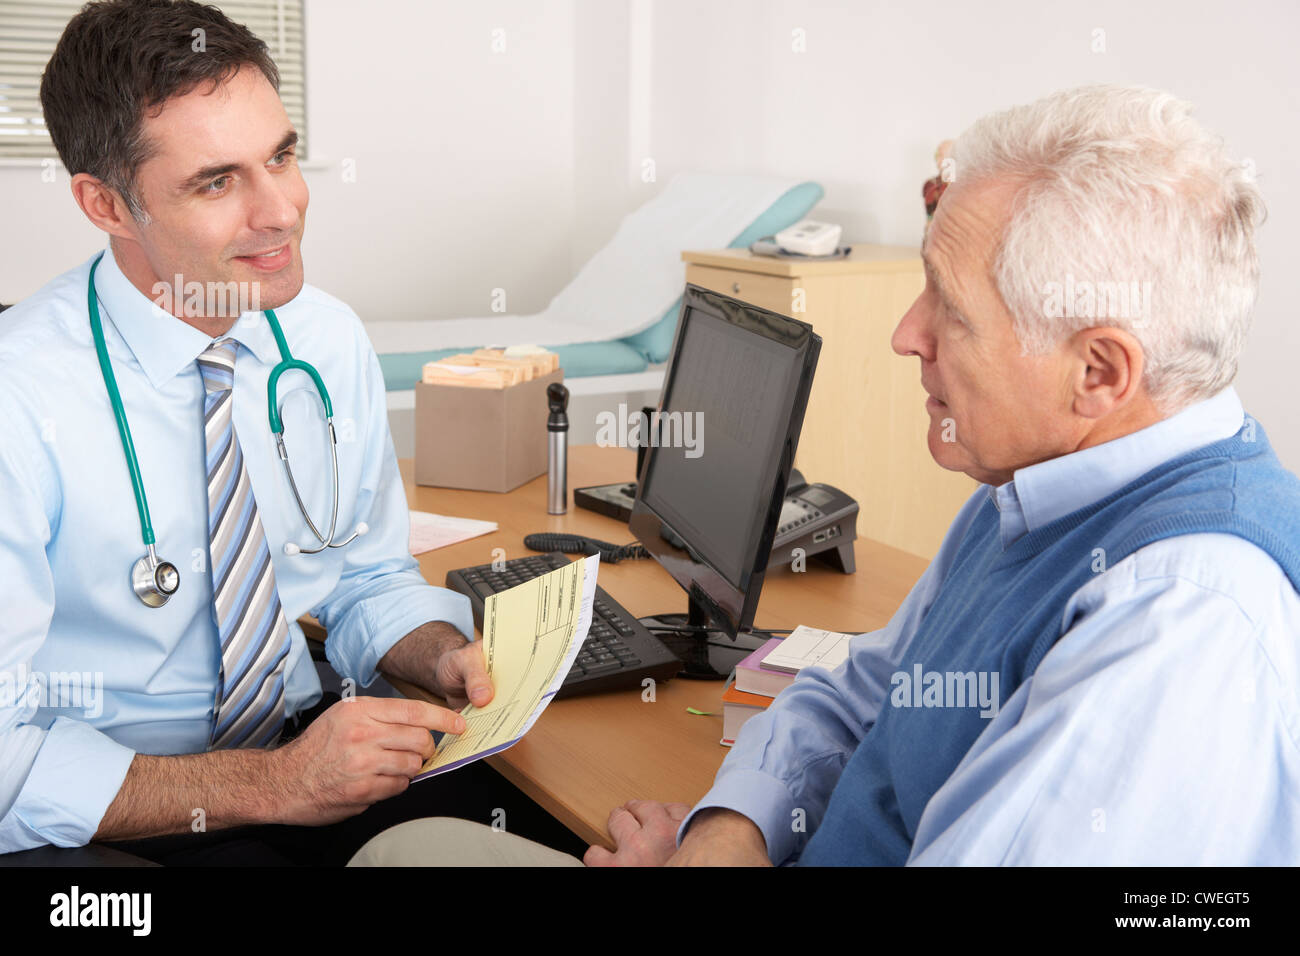 British GP talking to senior man in surgery - Stock Image